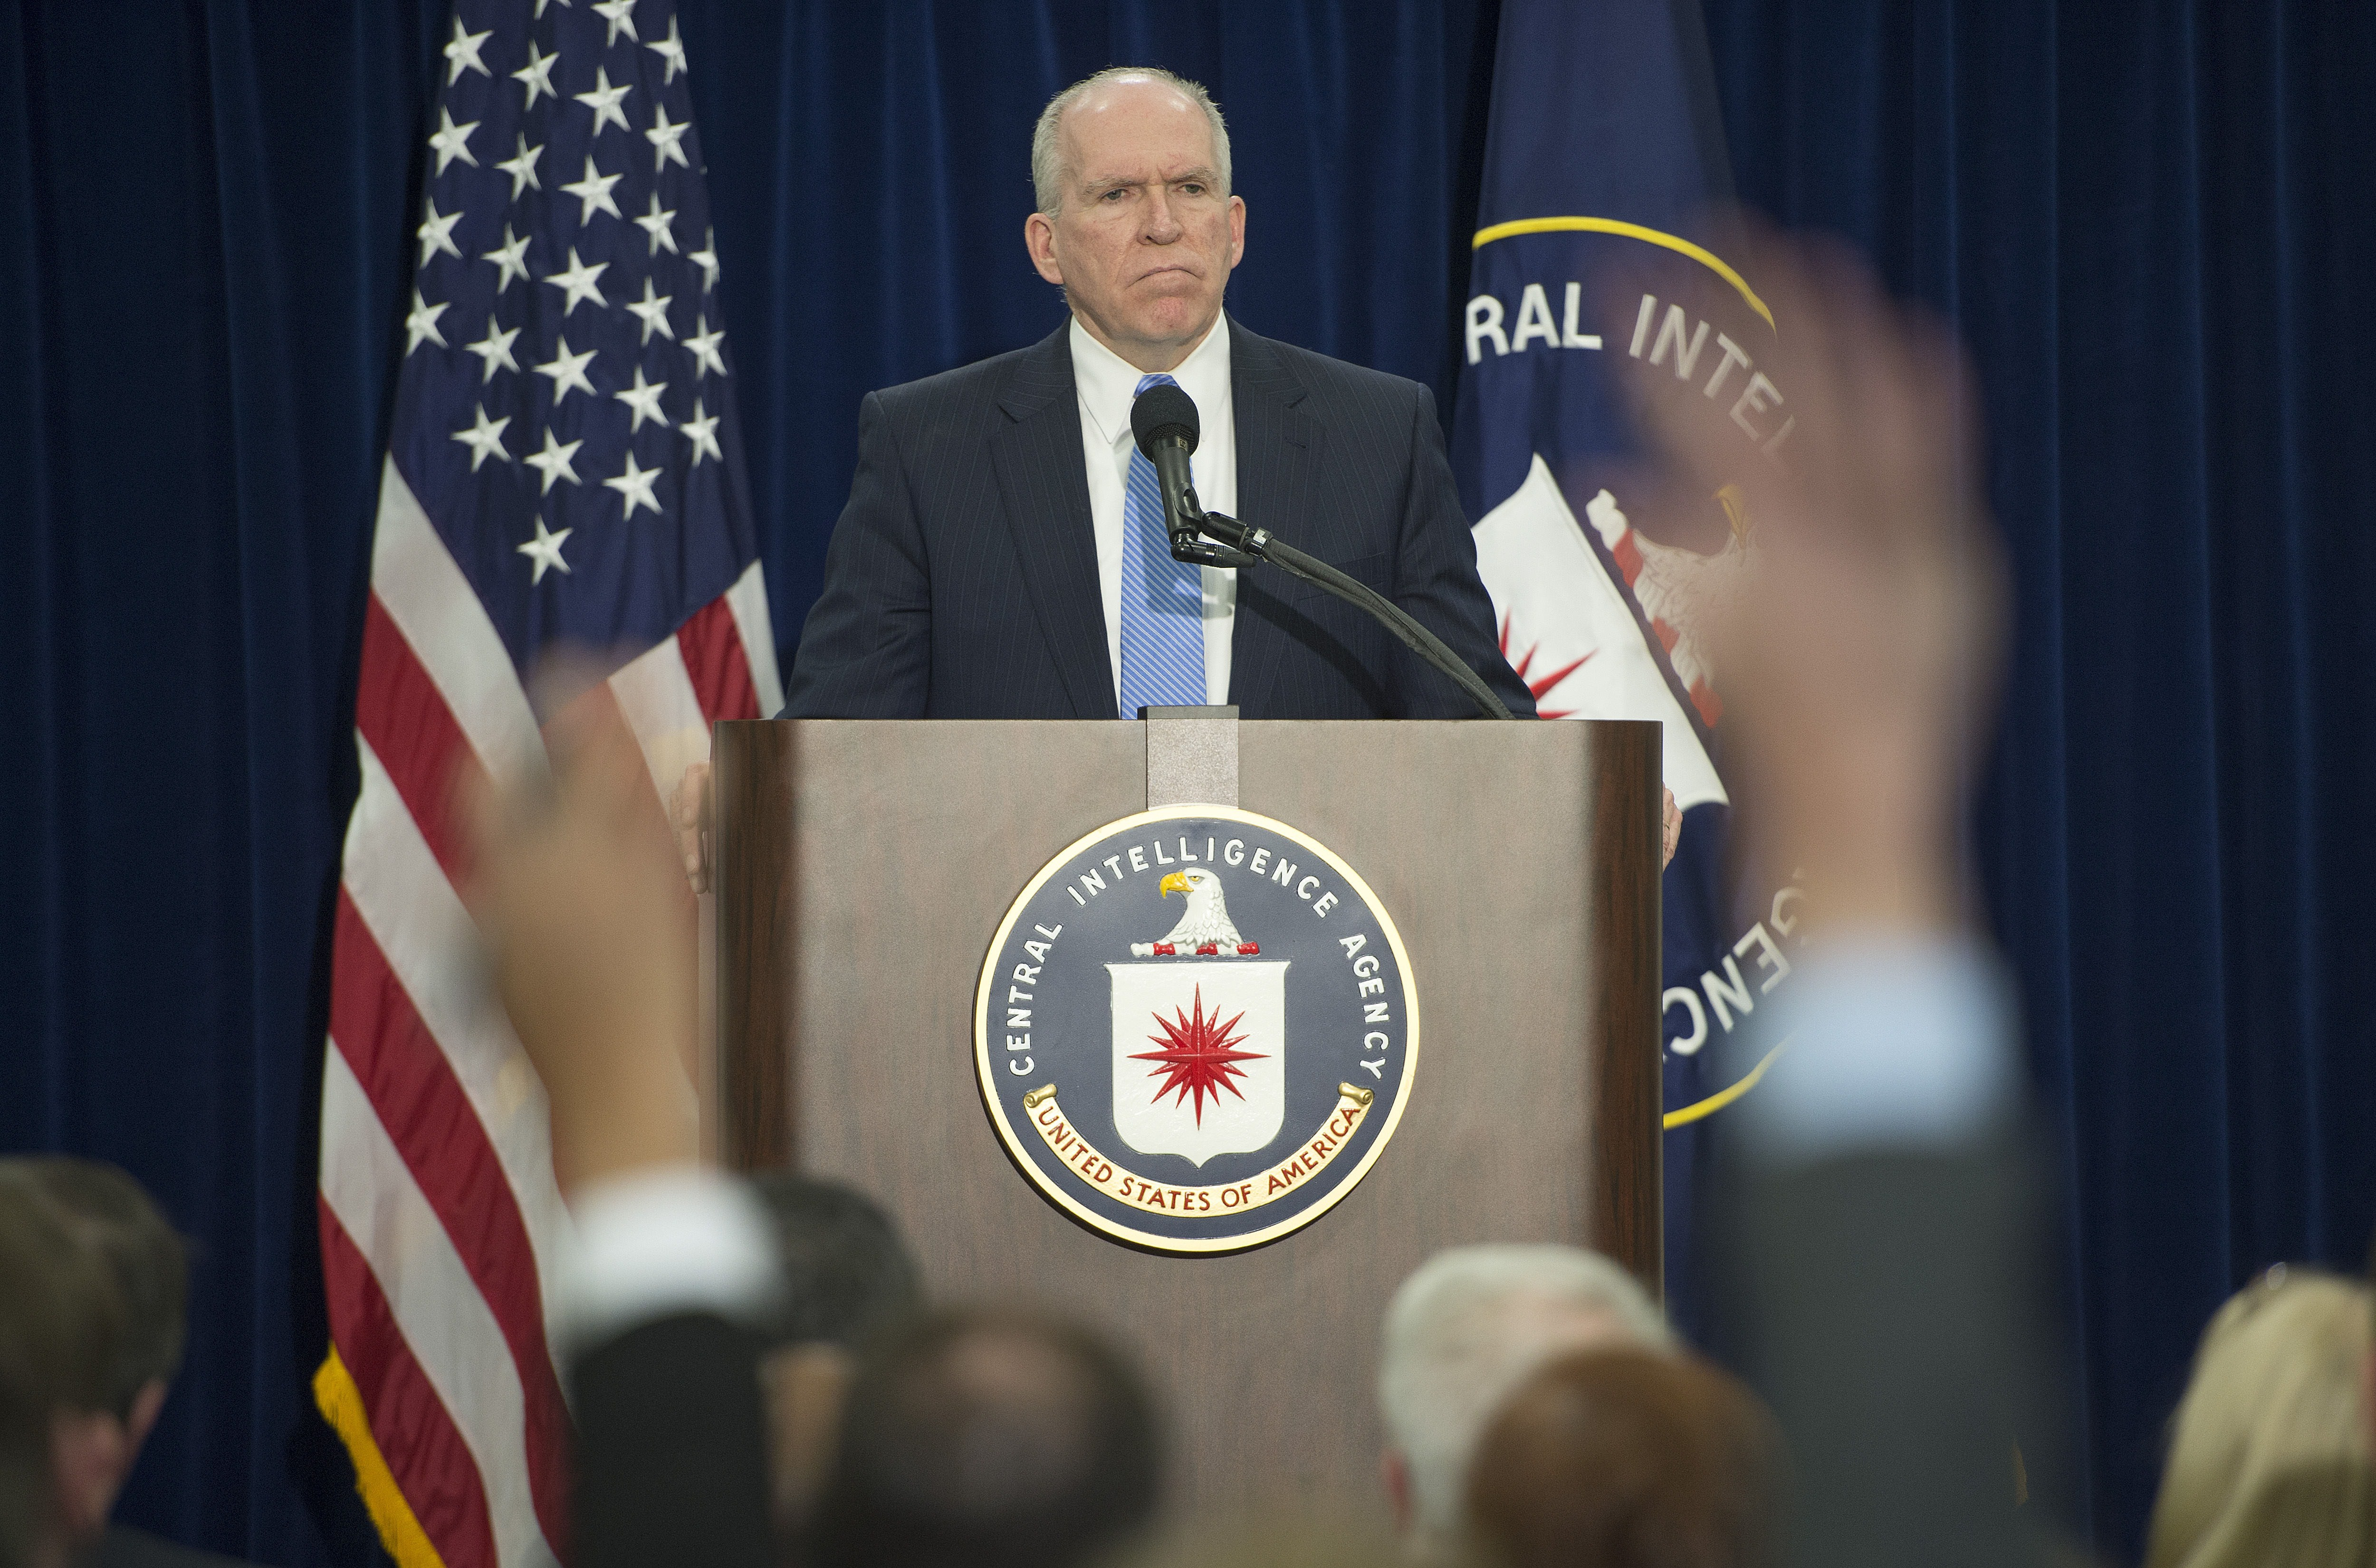 Director of Central Intelligence Agency John Brennan, December 11, 2014. (JIM WATSON/AFP/Getty Images)